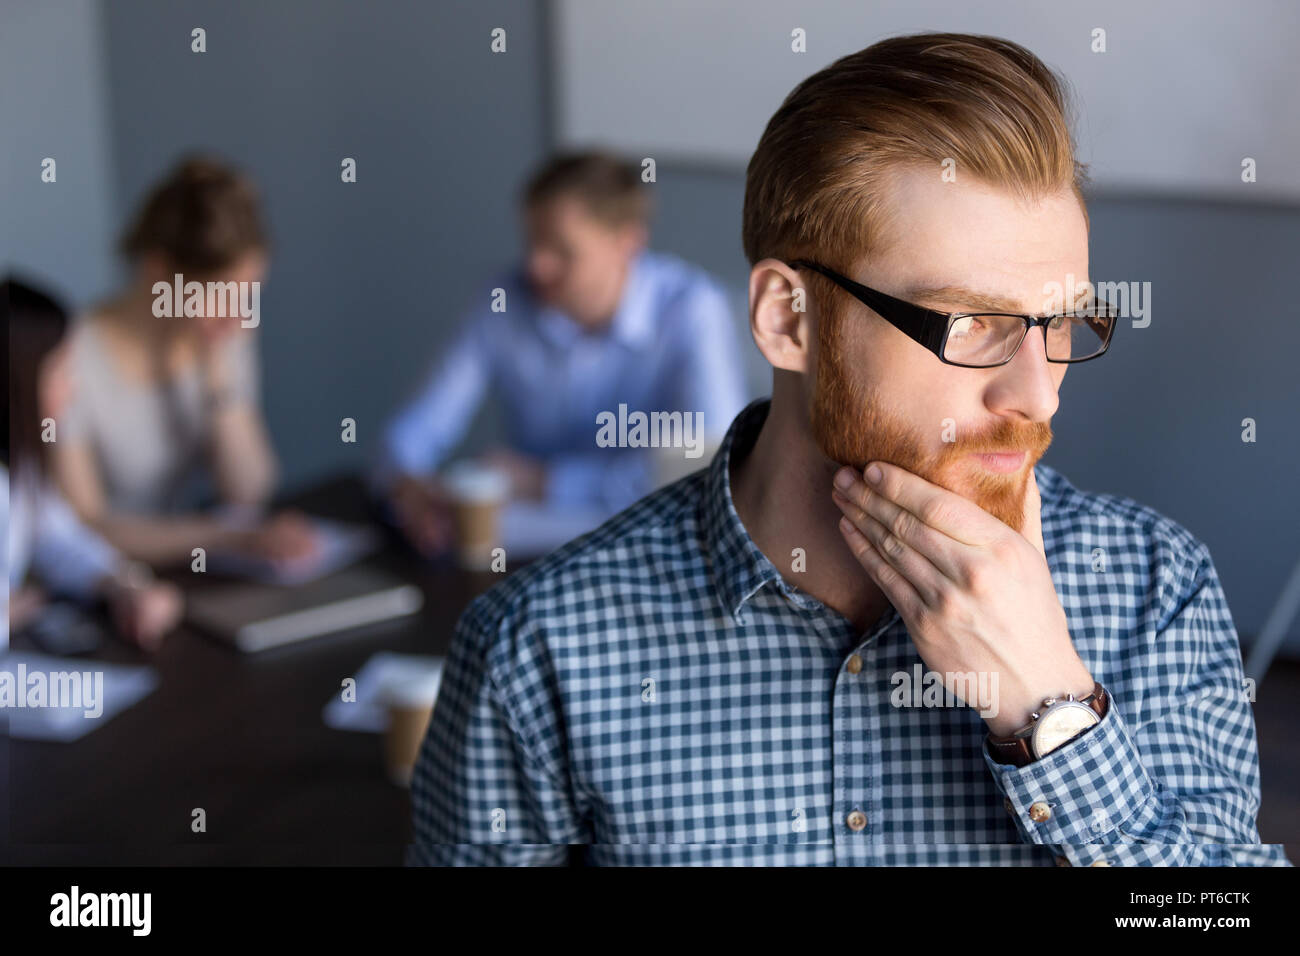 Thoughtful businessman looking away holding hand on chin plannin - Stock Image